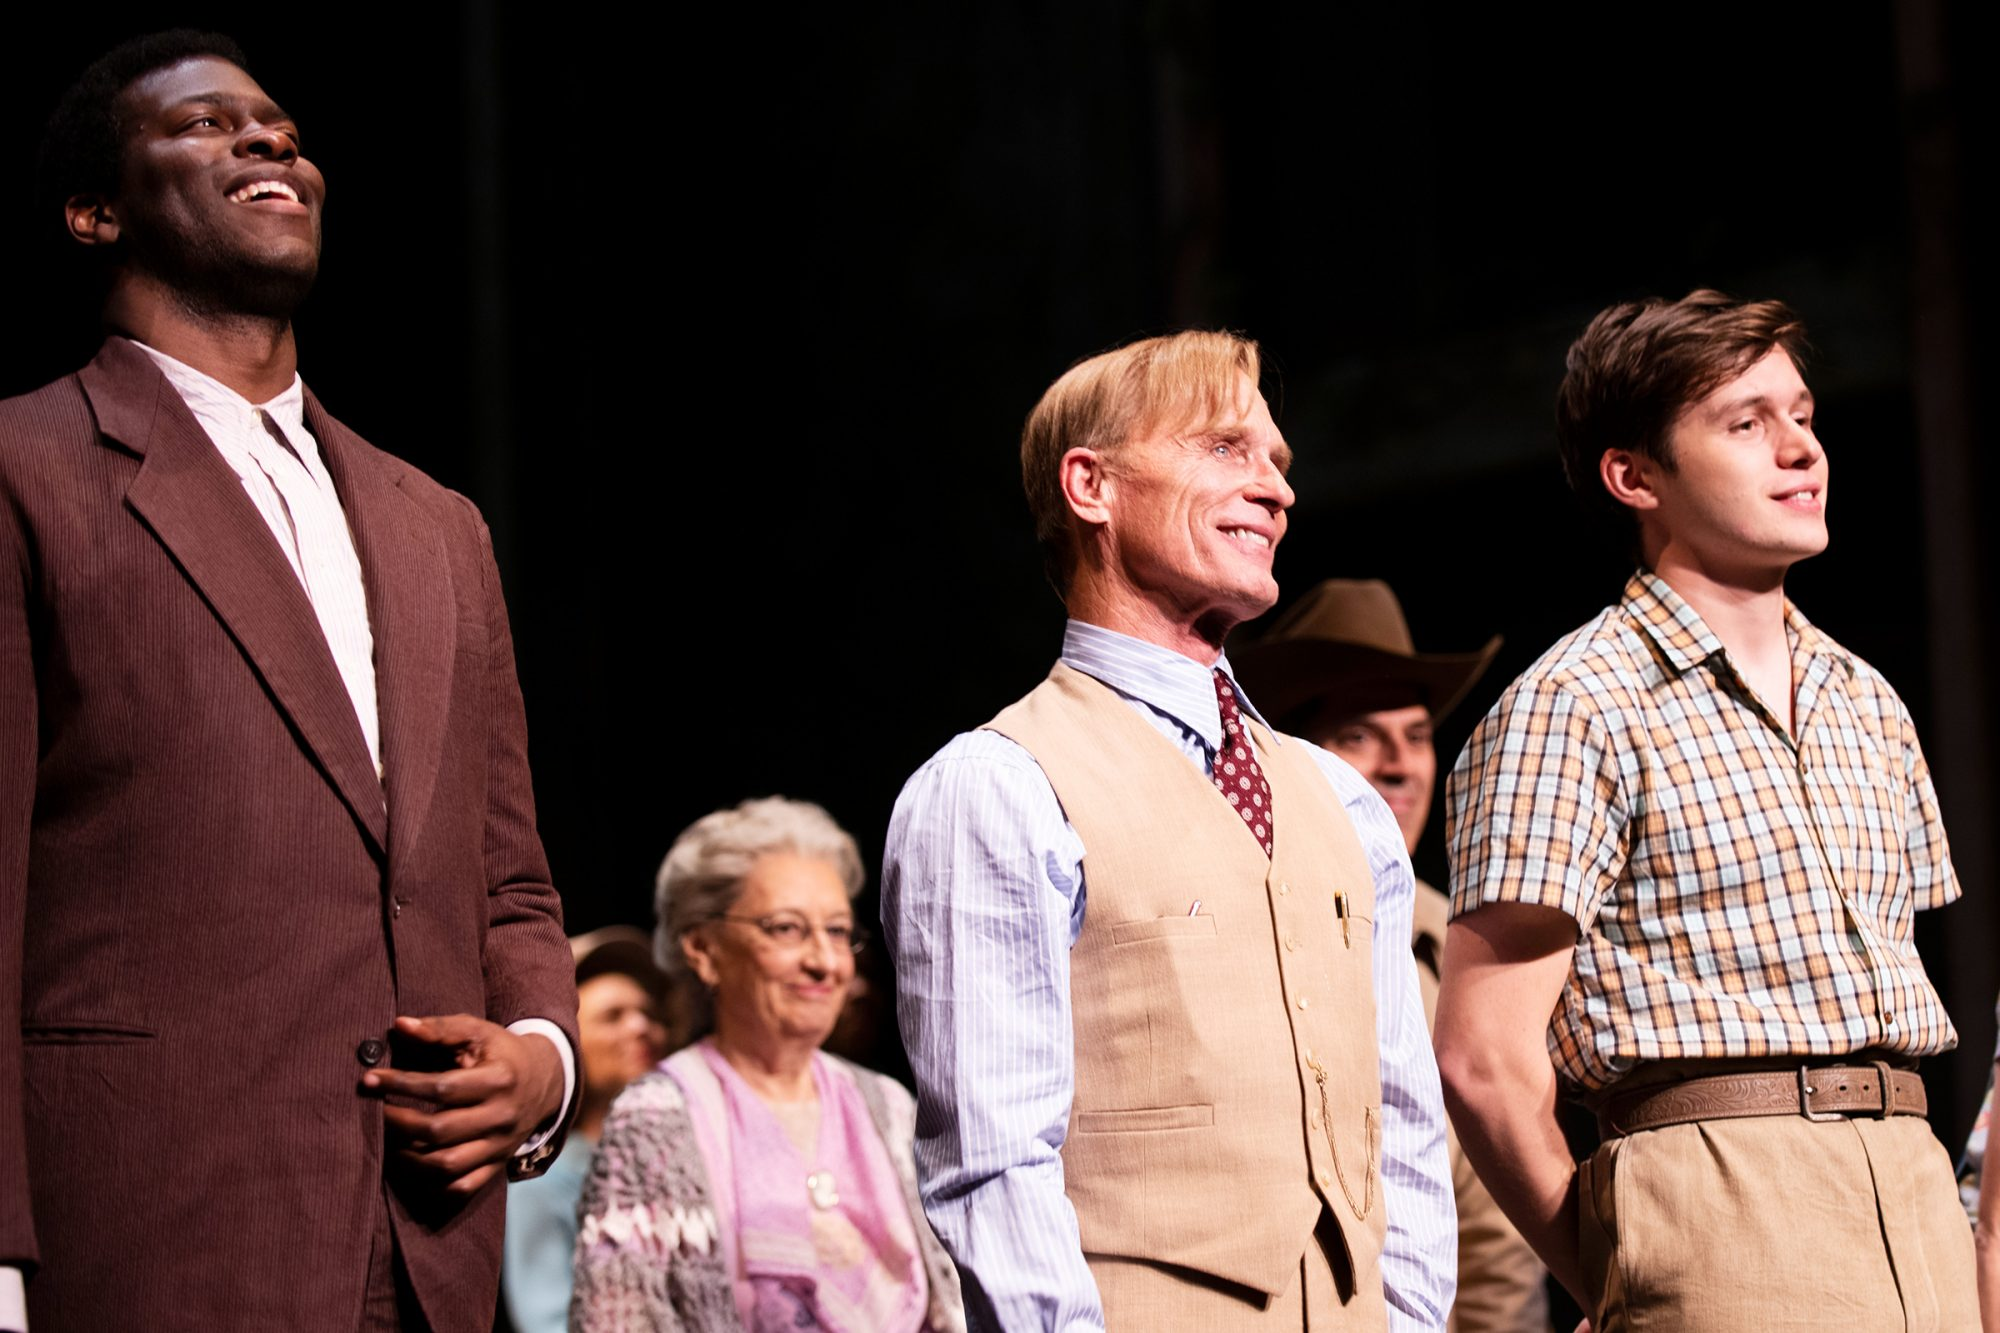 Ed Harris took his first bow as Atticus Finch in To Kill a Mockingbird on Broadway – along with Nick Robinson